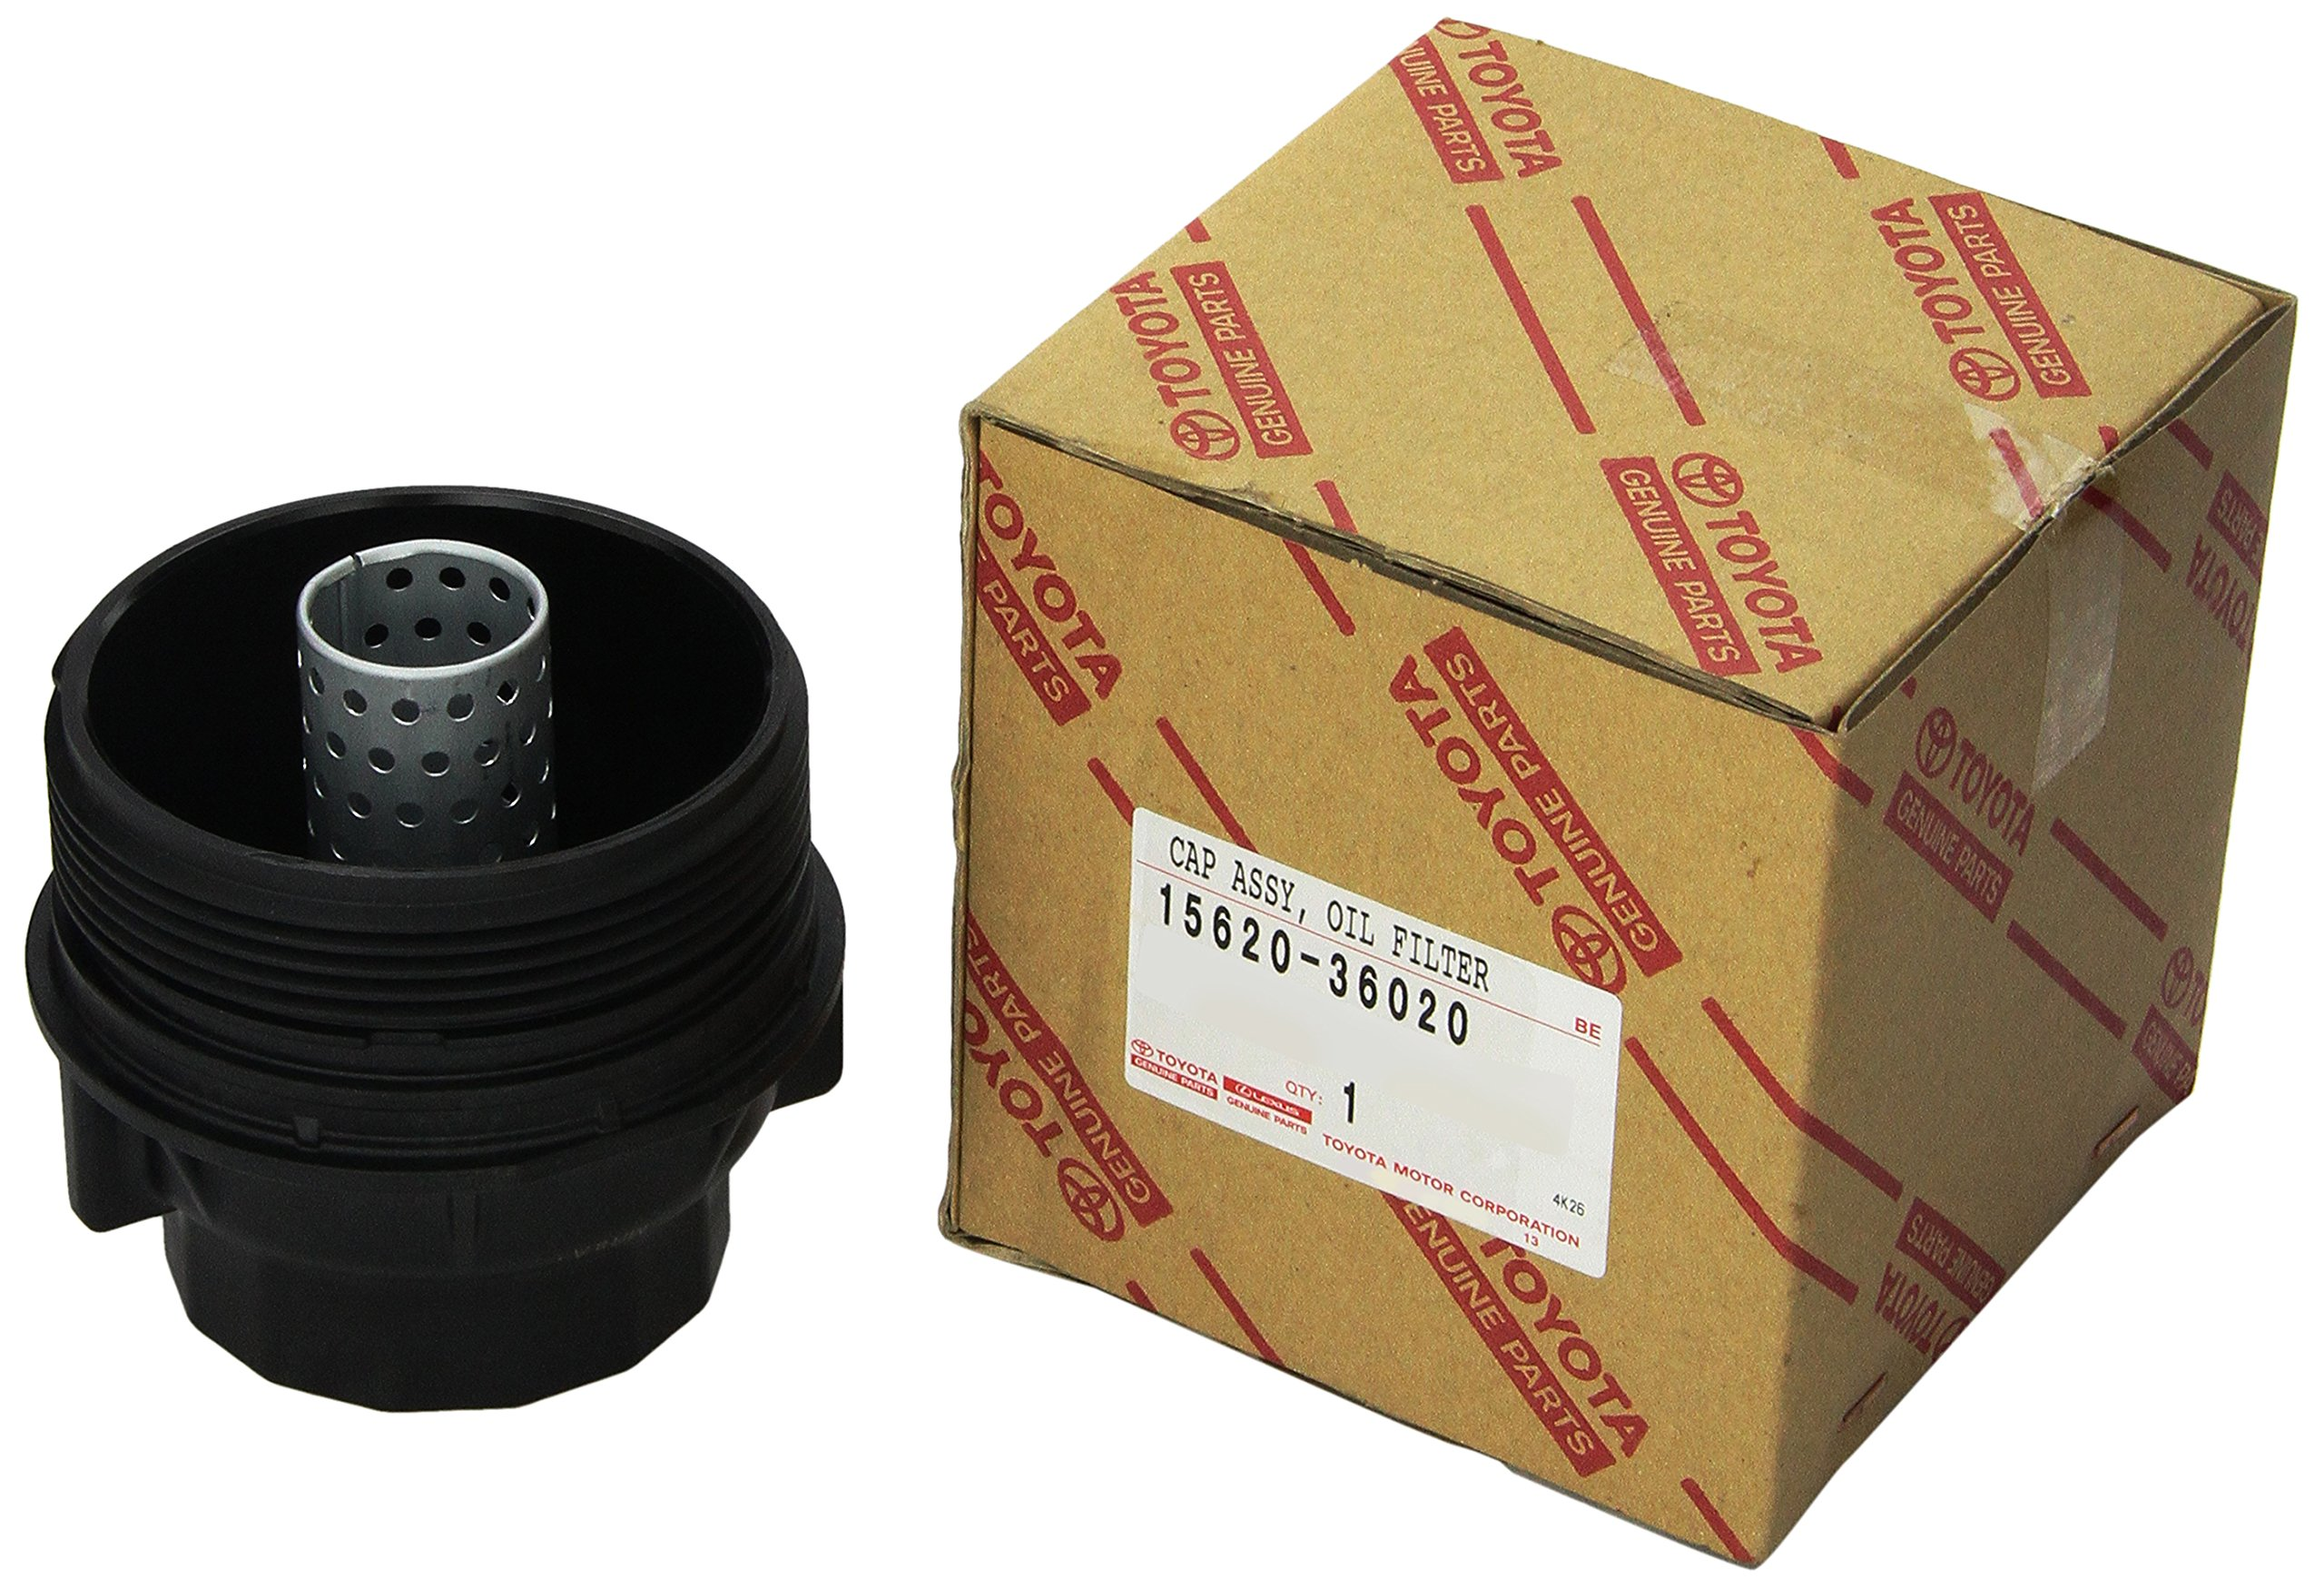 Genuine Toyota 15620-36020 Oil Filter Cap Assembly